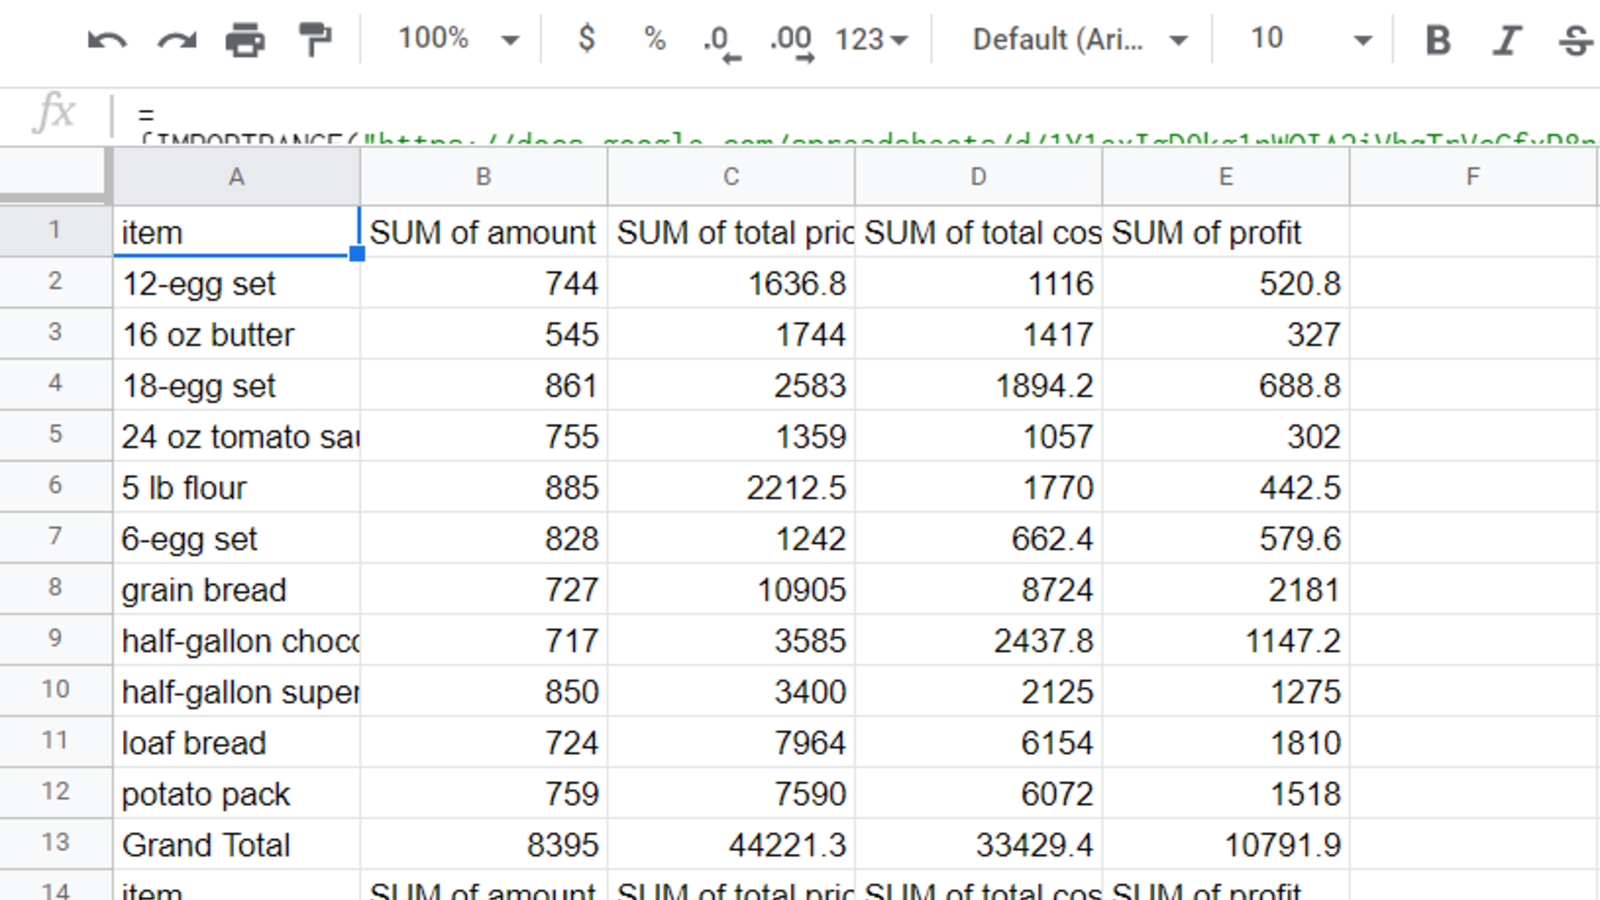 The ranges from multiple sheets combined in the single destination Google Sheet via IMPORTRANGE.